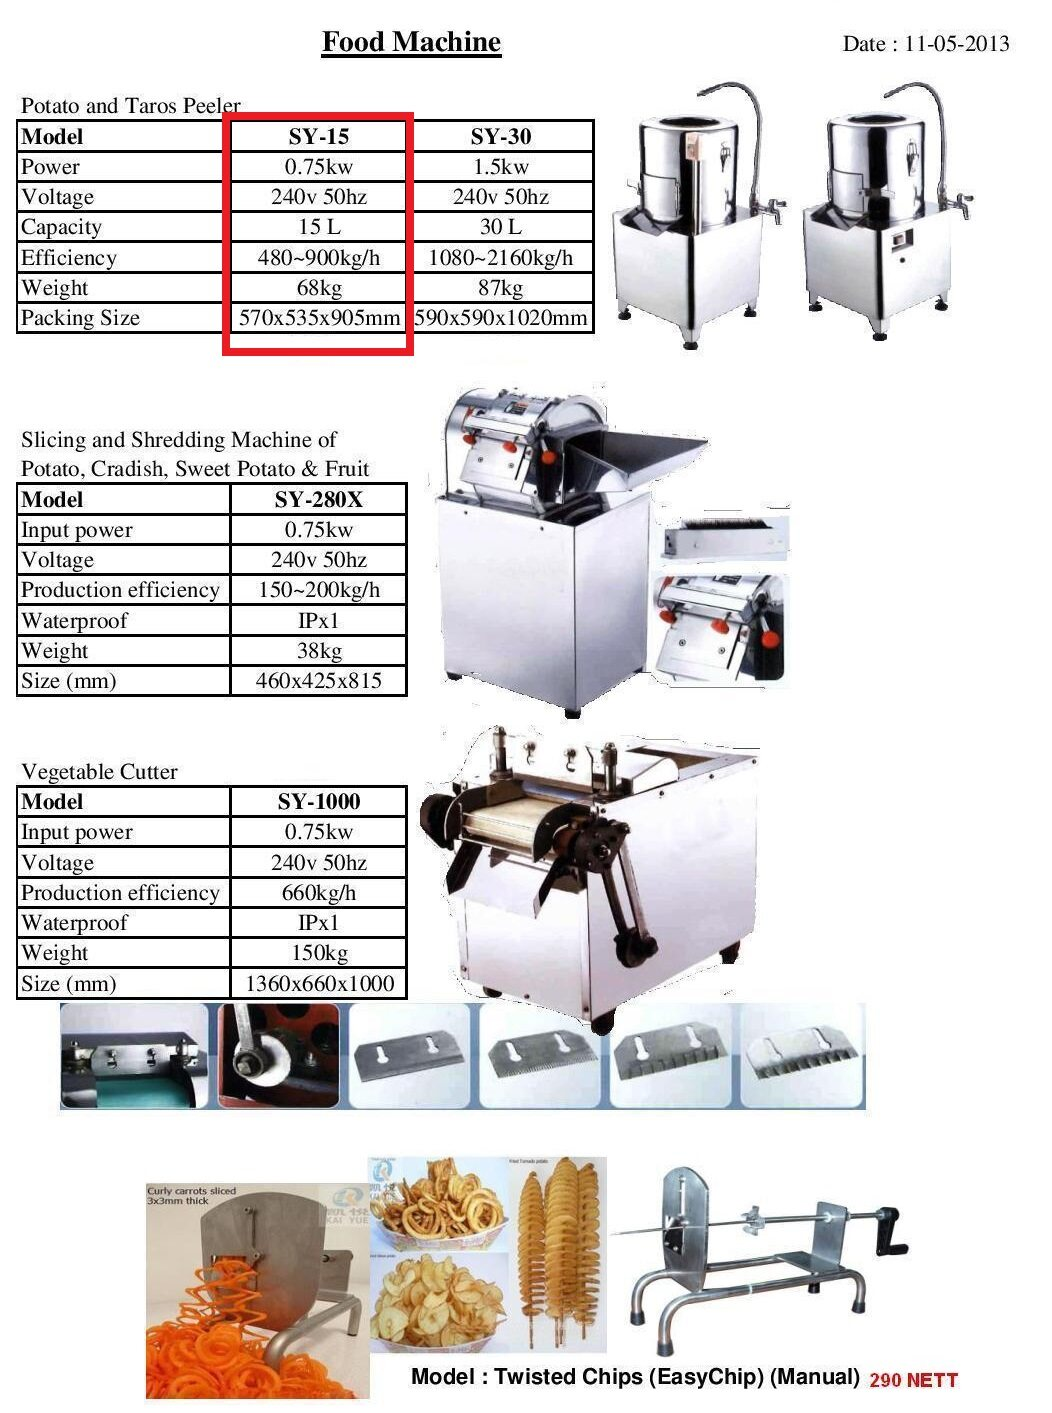 food potato onion skin wash washing clear clean cleaning remove removing motor cut cutter cutting peeler peel peeling slice slicing slicer motor electric water pump clean cleaning cleaner fruit wash washing washer grinder grinding sanding sander machine